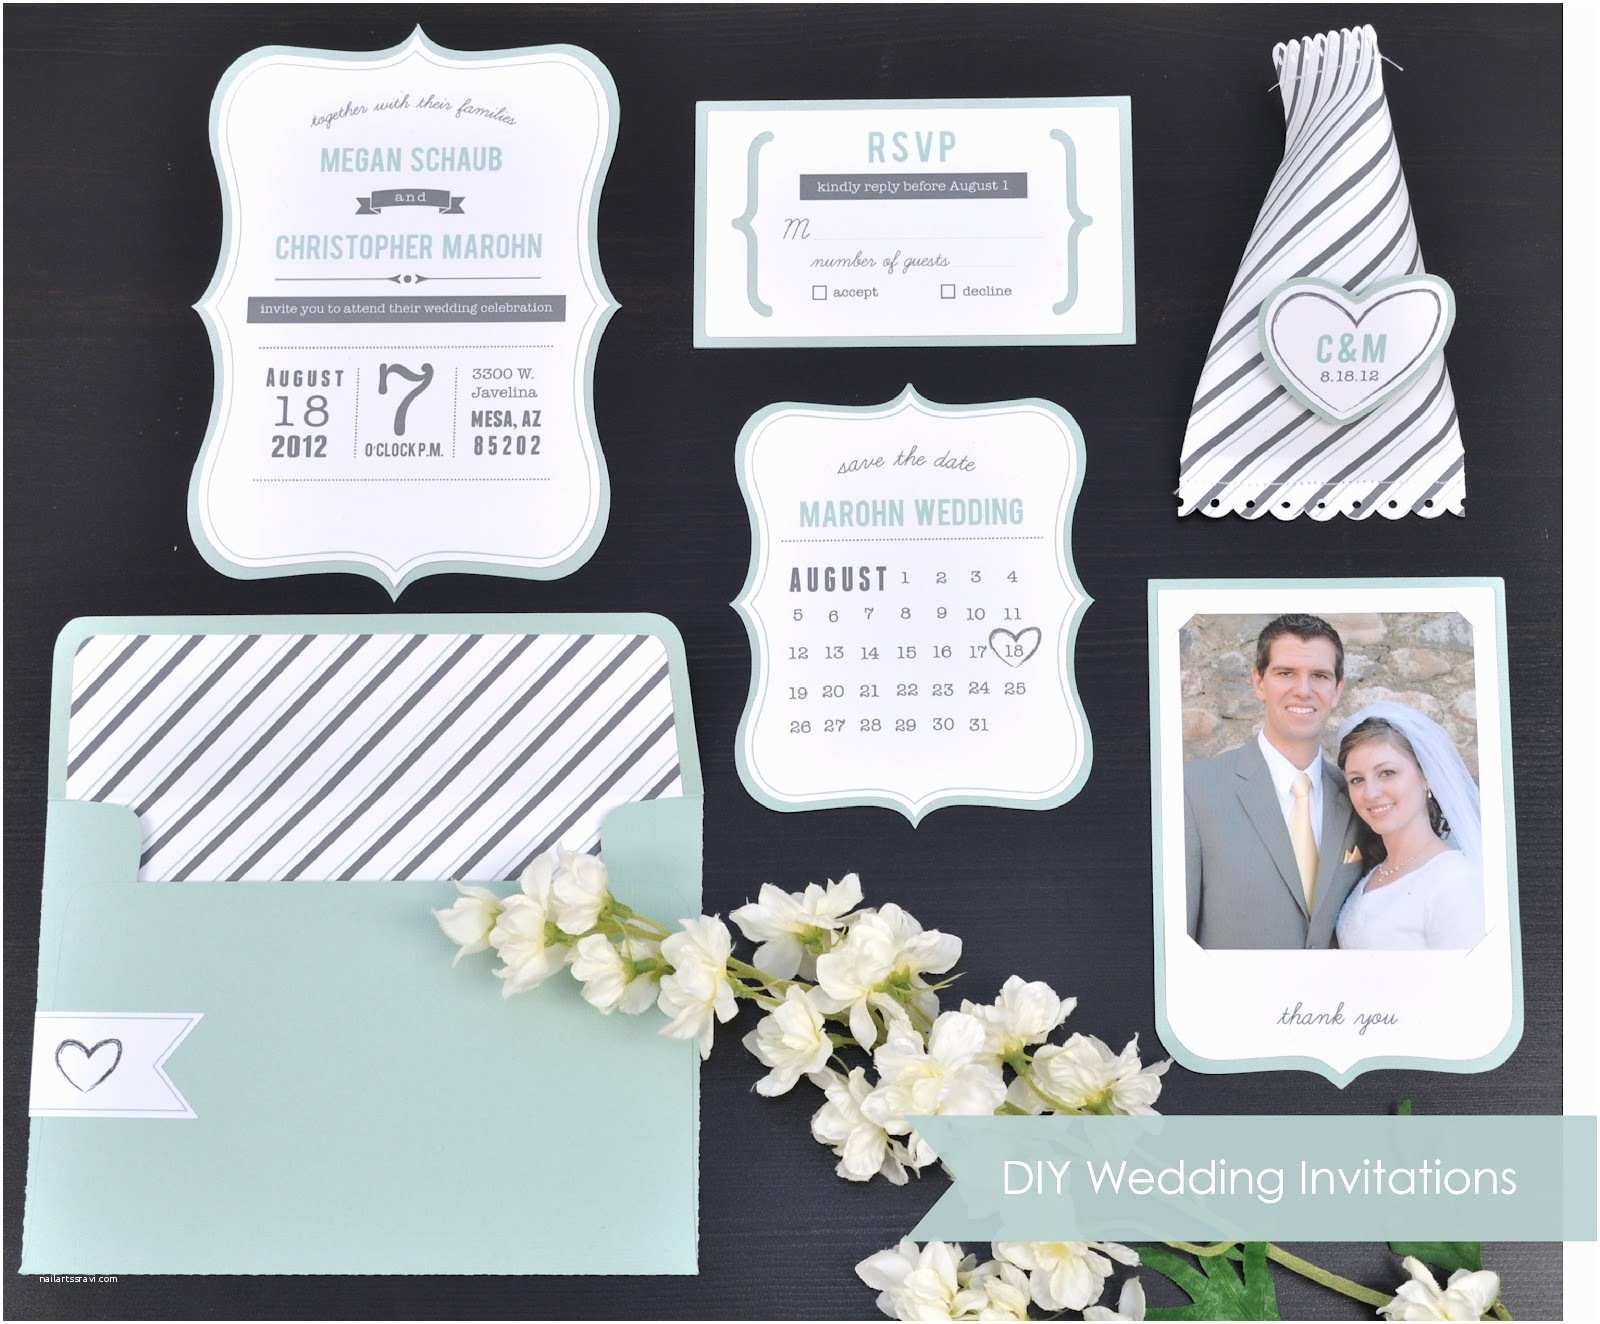 Wedding Invitation Diy 10 Great Diy Wedding Projects Yeahmag